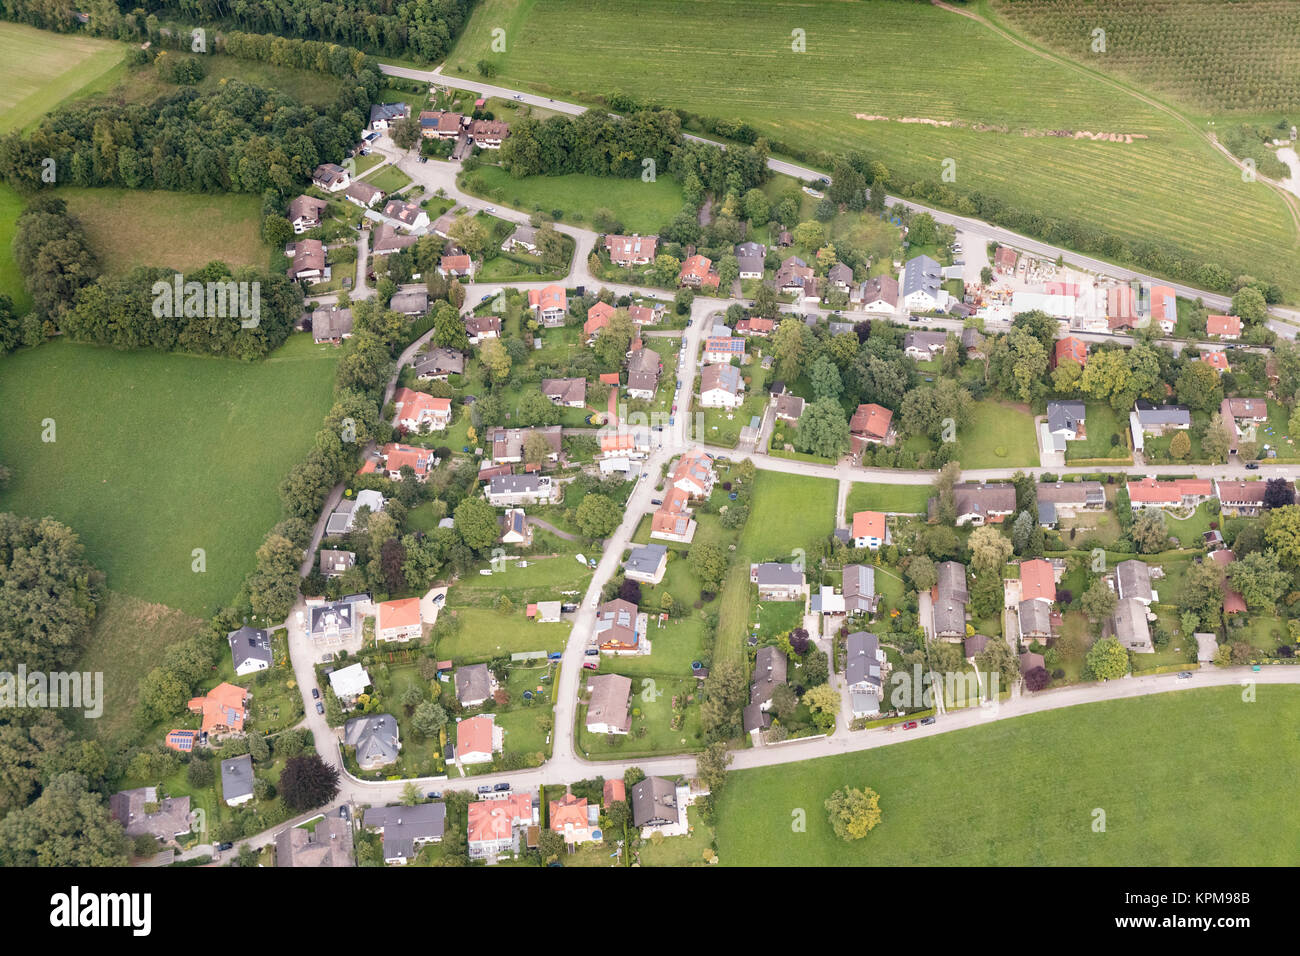 aerial view of Herrsching am Ammersee, Munich, Bavaria, Germany - Stock Image